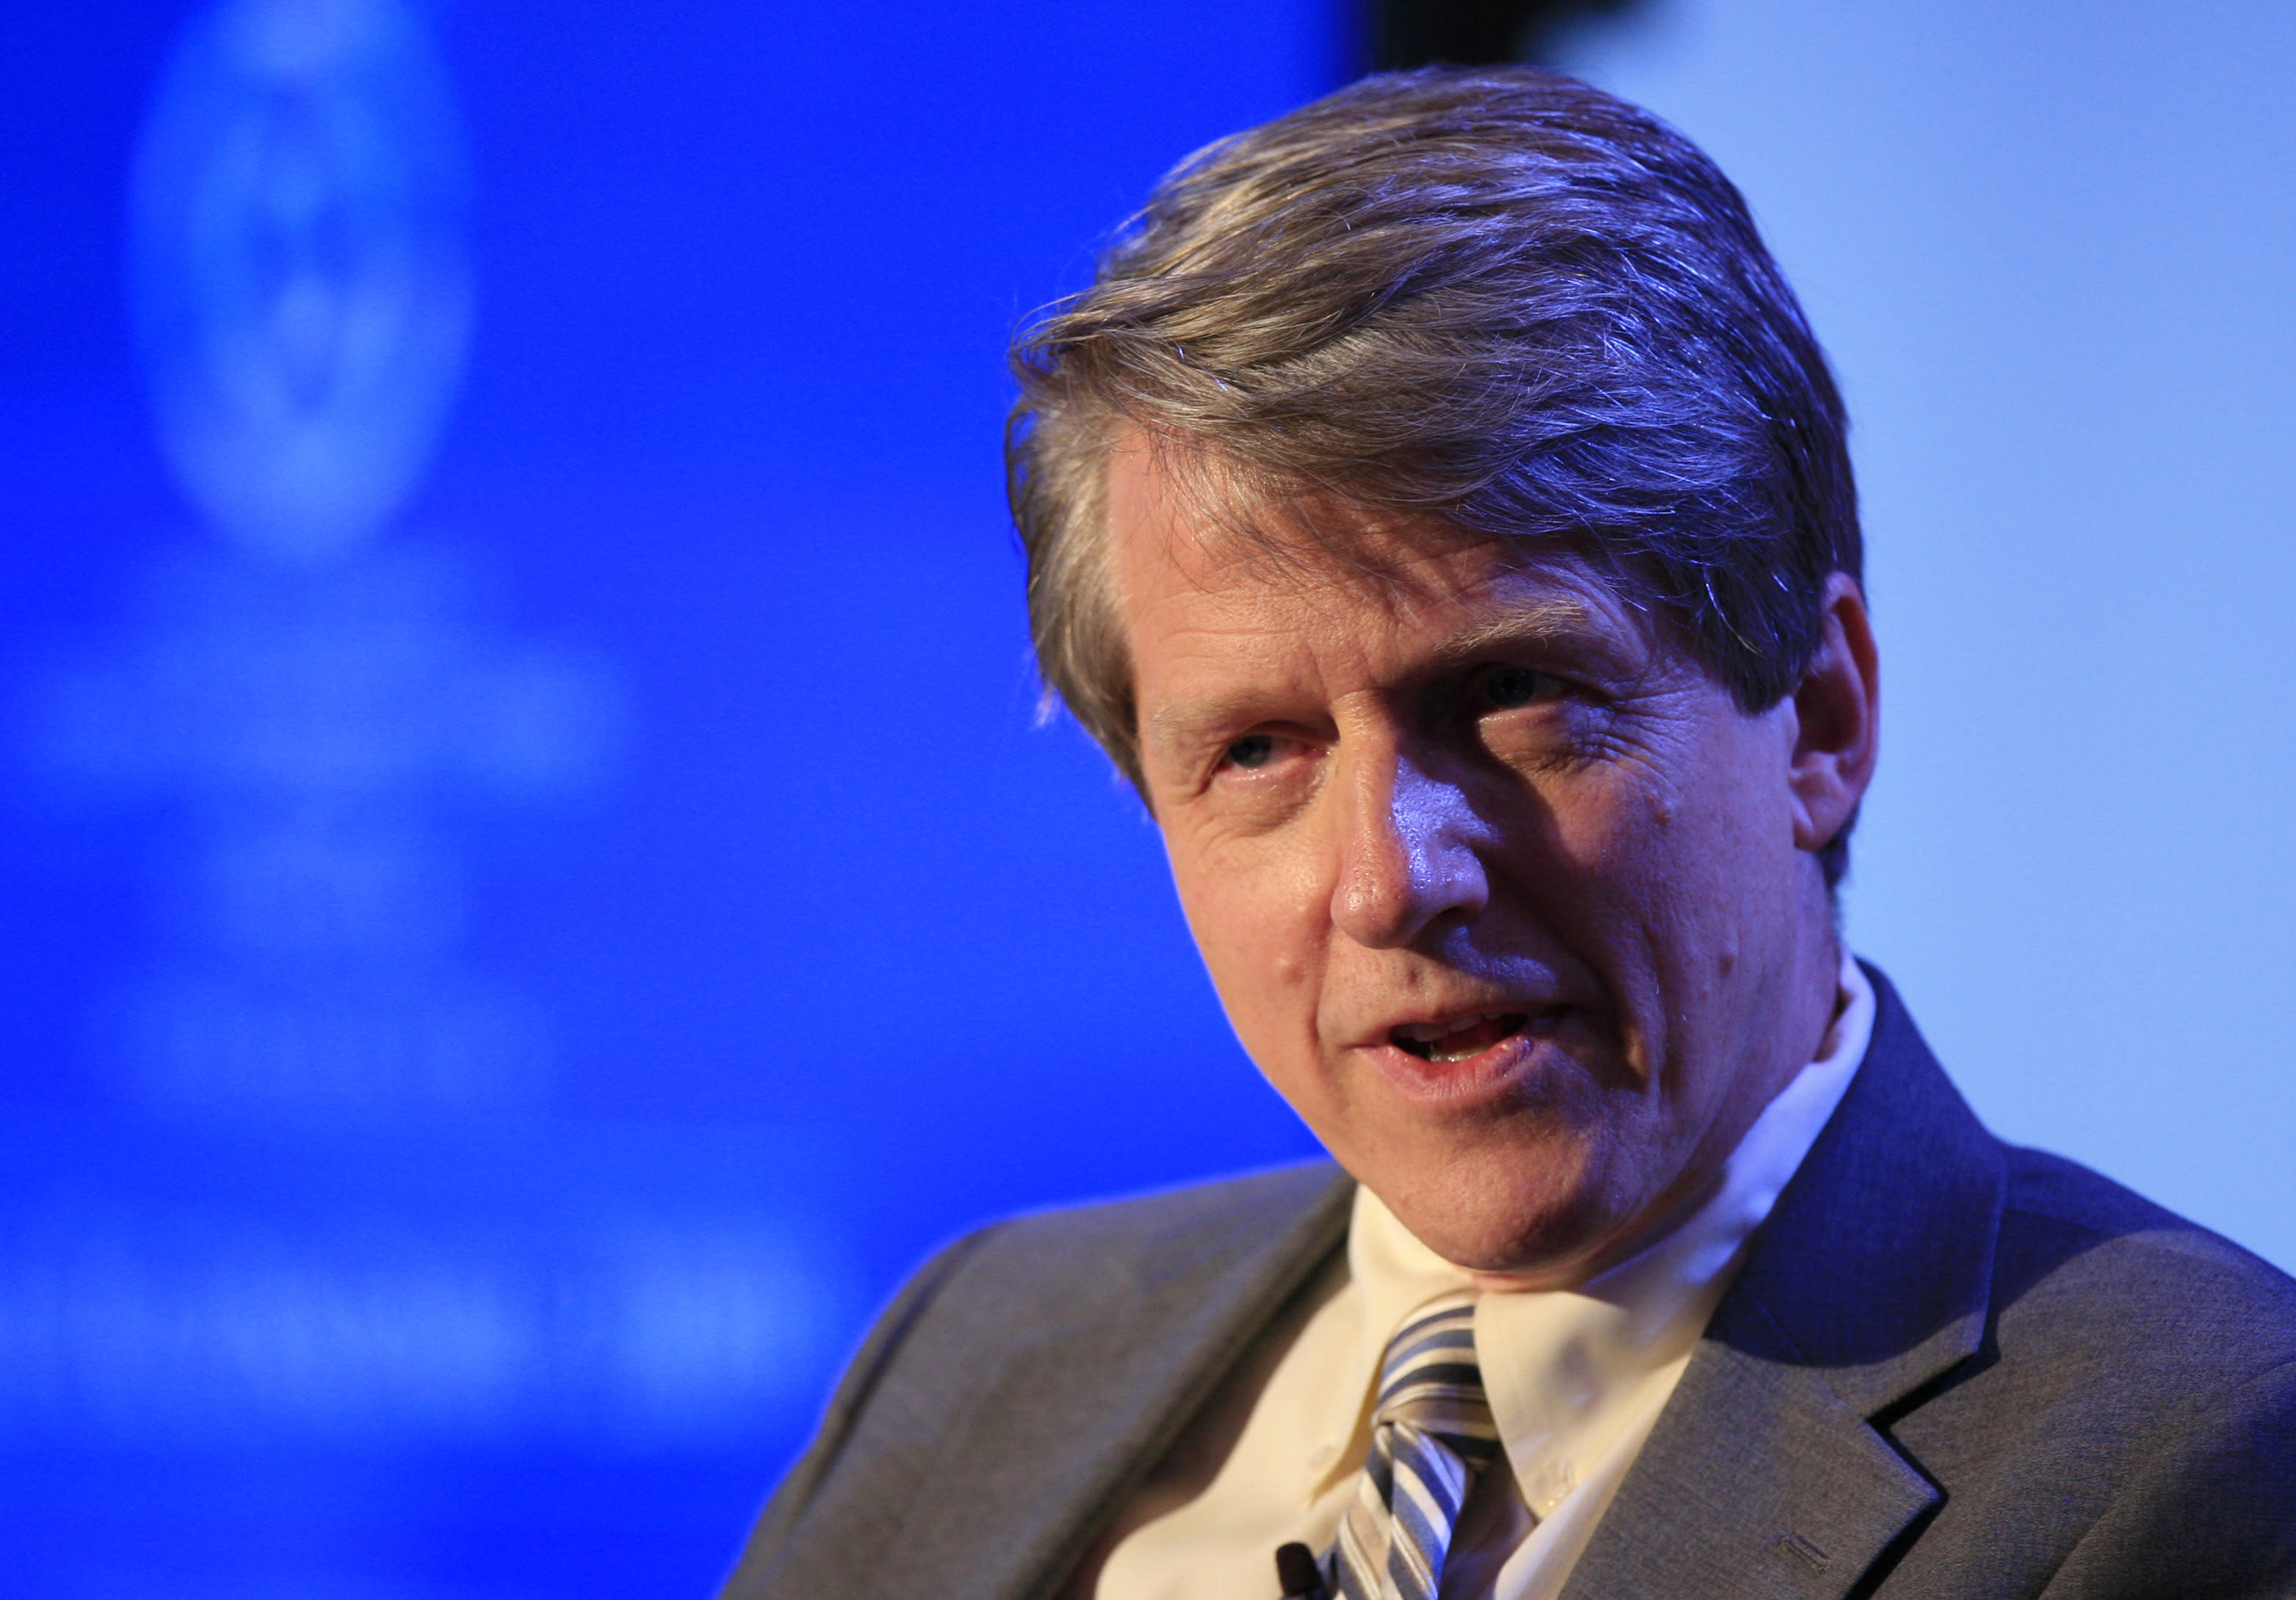 Nobel-winning economist Robert Shiller: We're 'sneaking back into the old 2006 mentality'